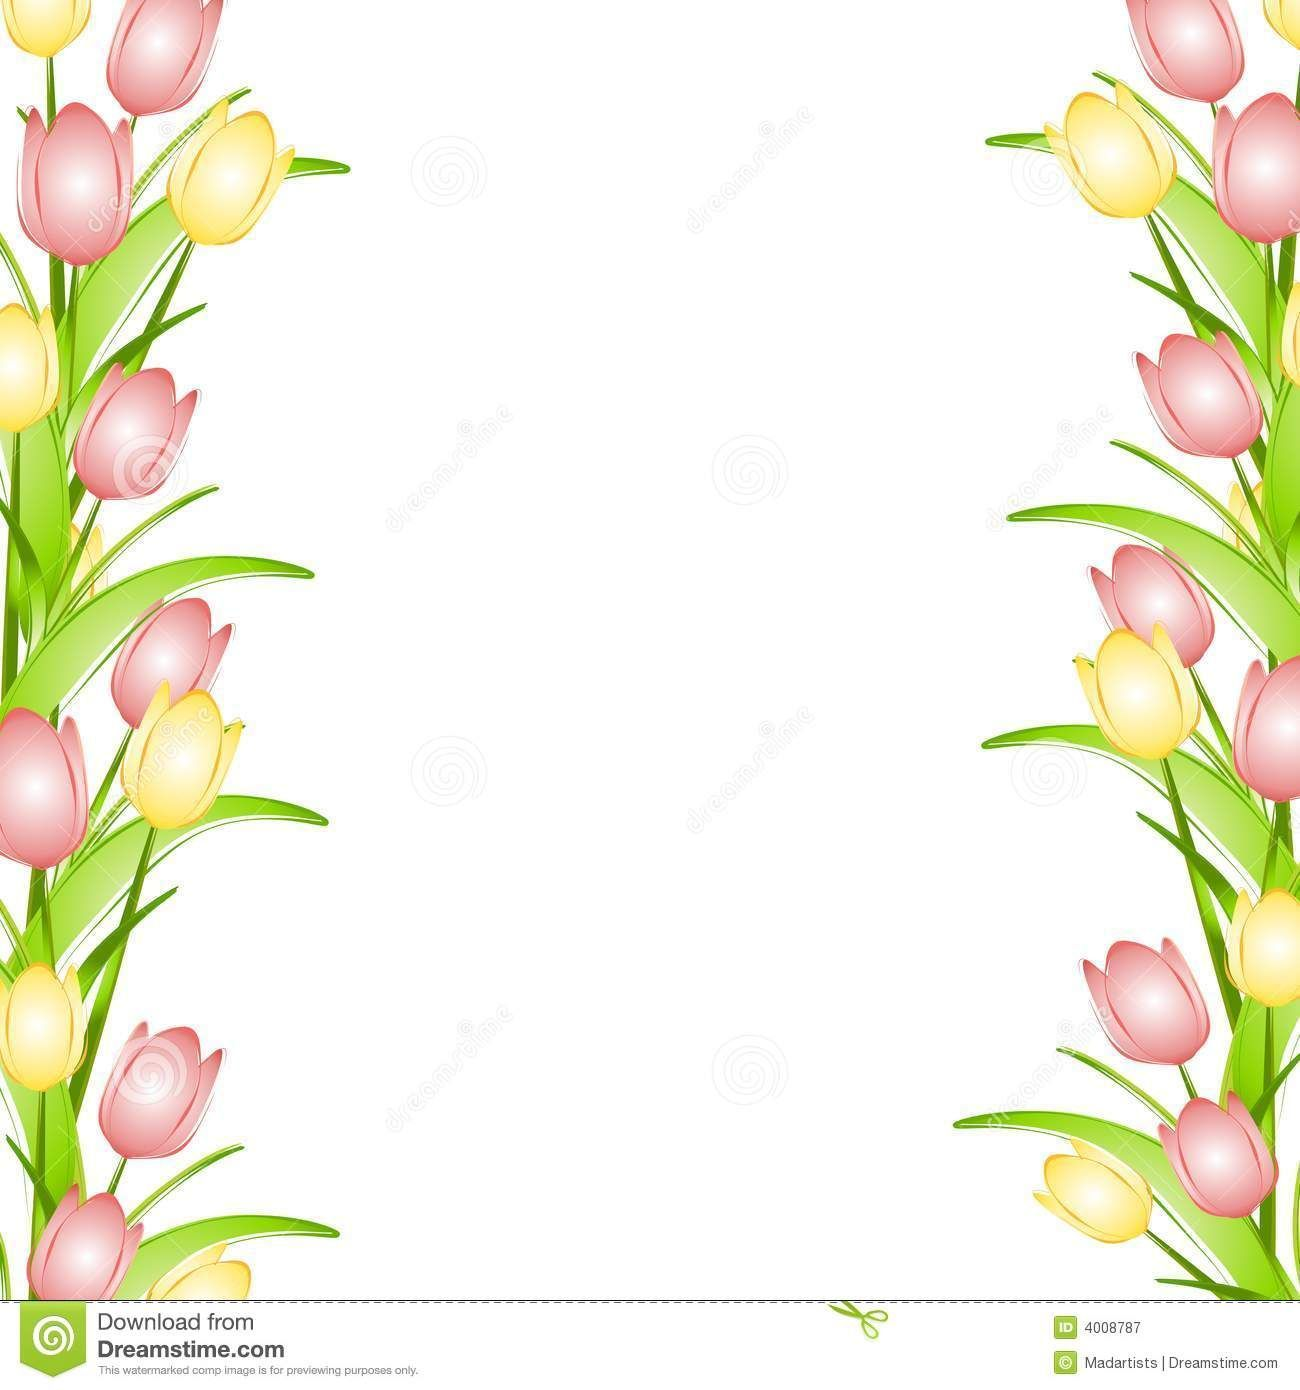 free spring borders and backgrounds.